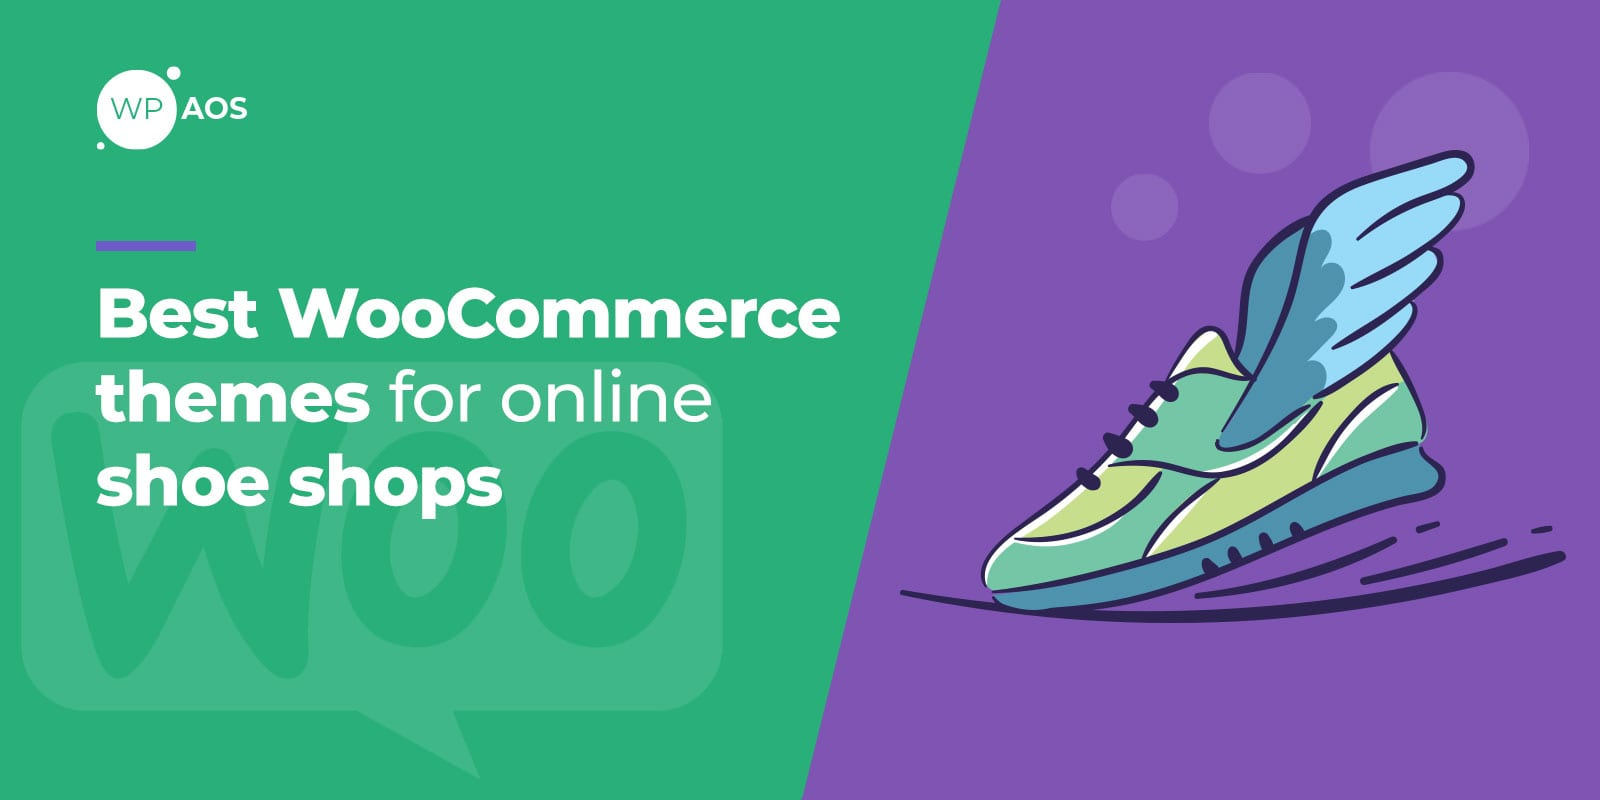 WooCommerce Themes, Shoe Shop Themes, WordPress Website